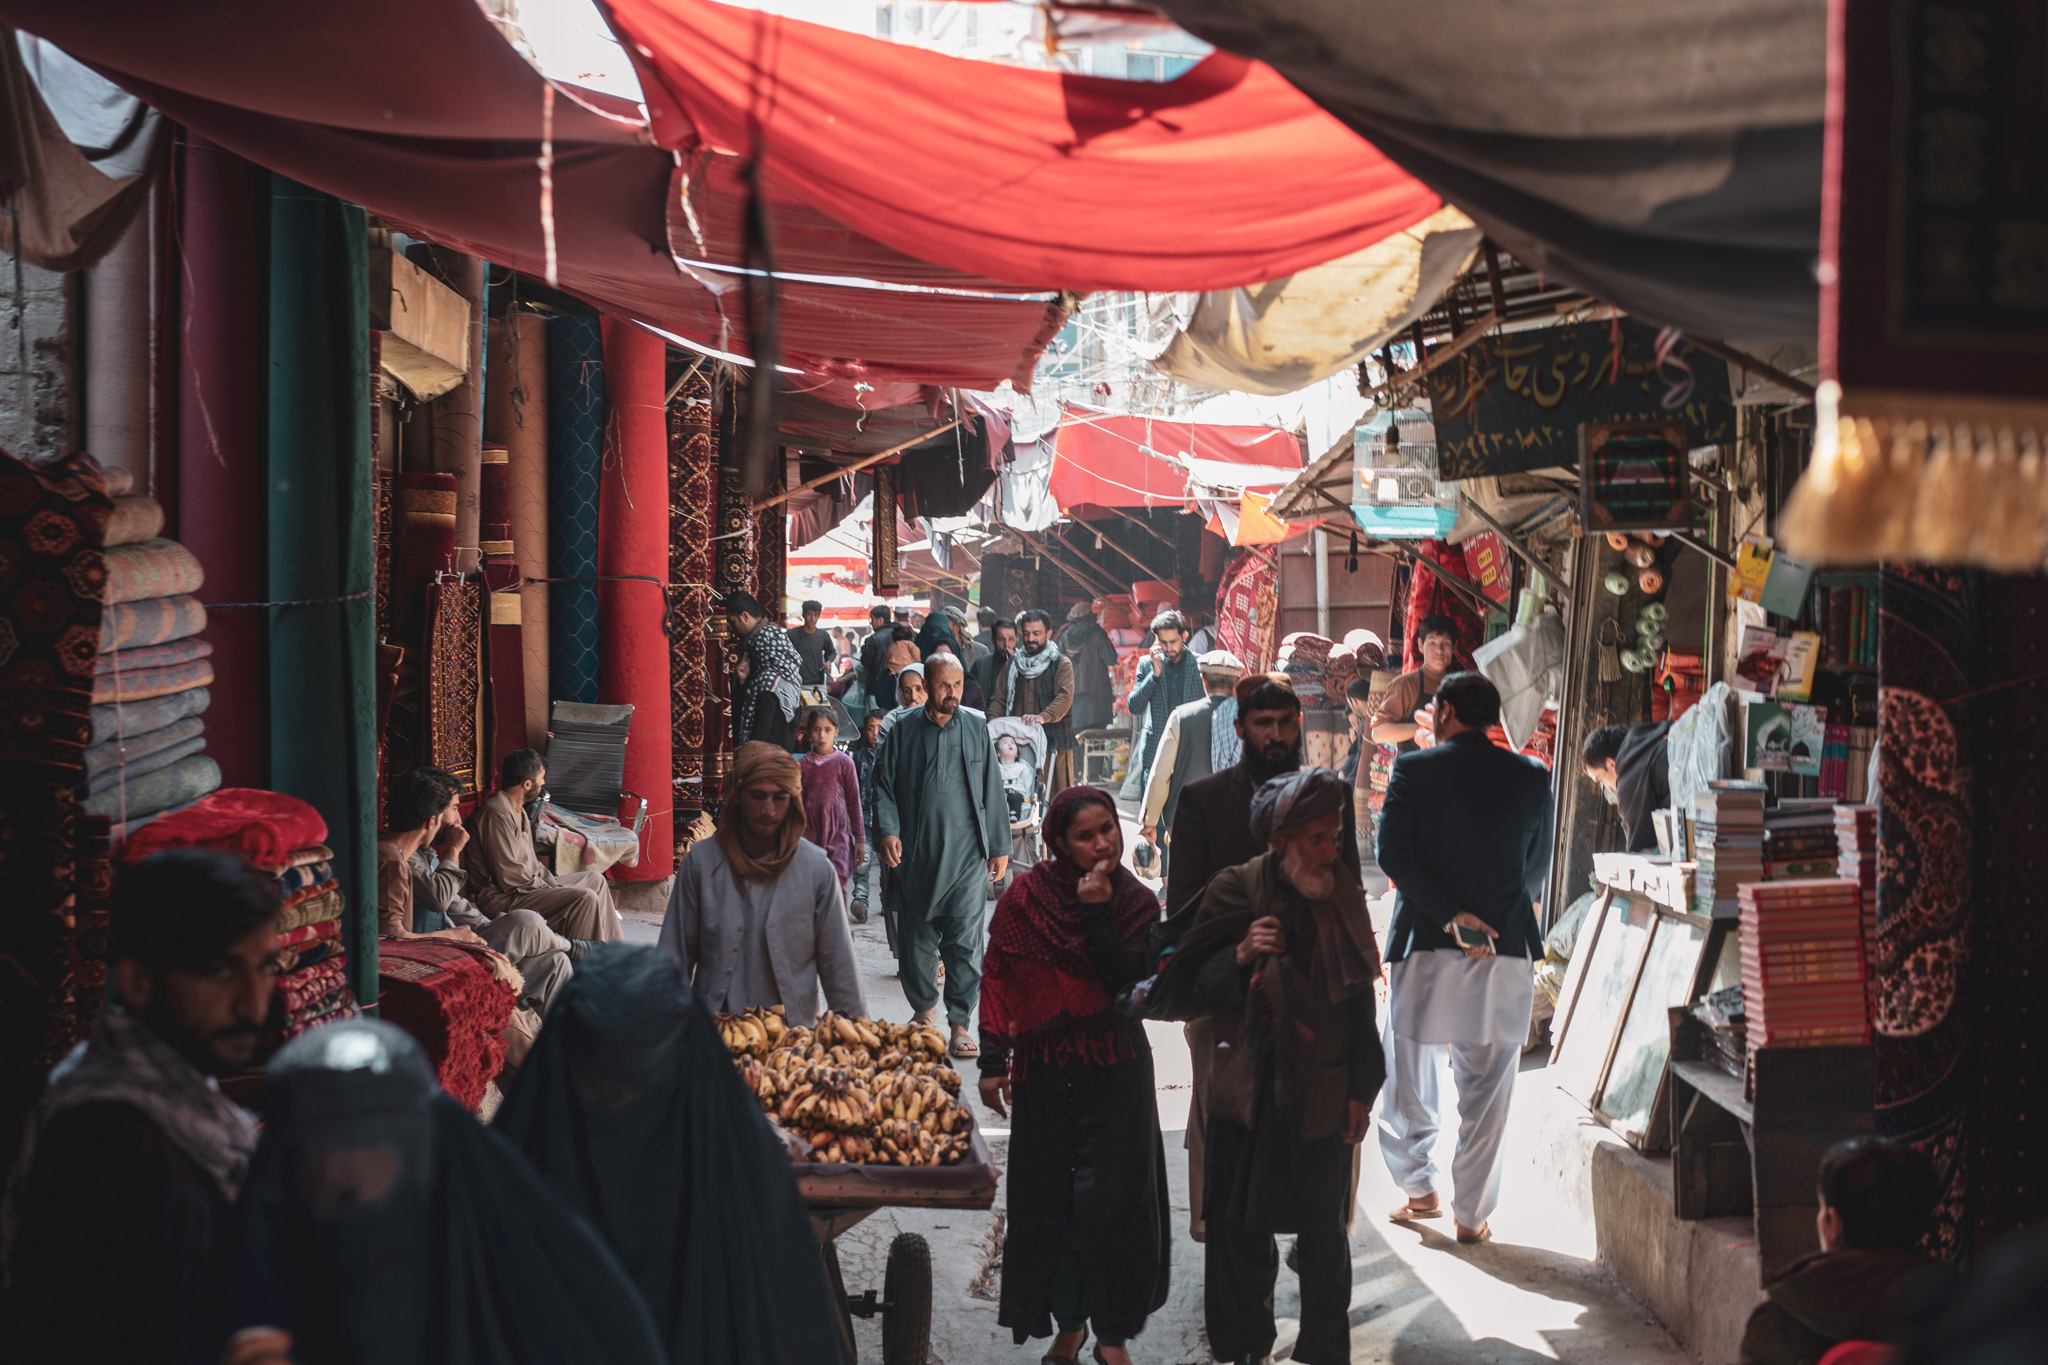 Wandering the old markets of Kabul